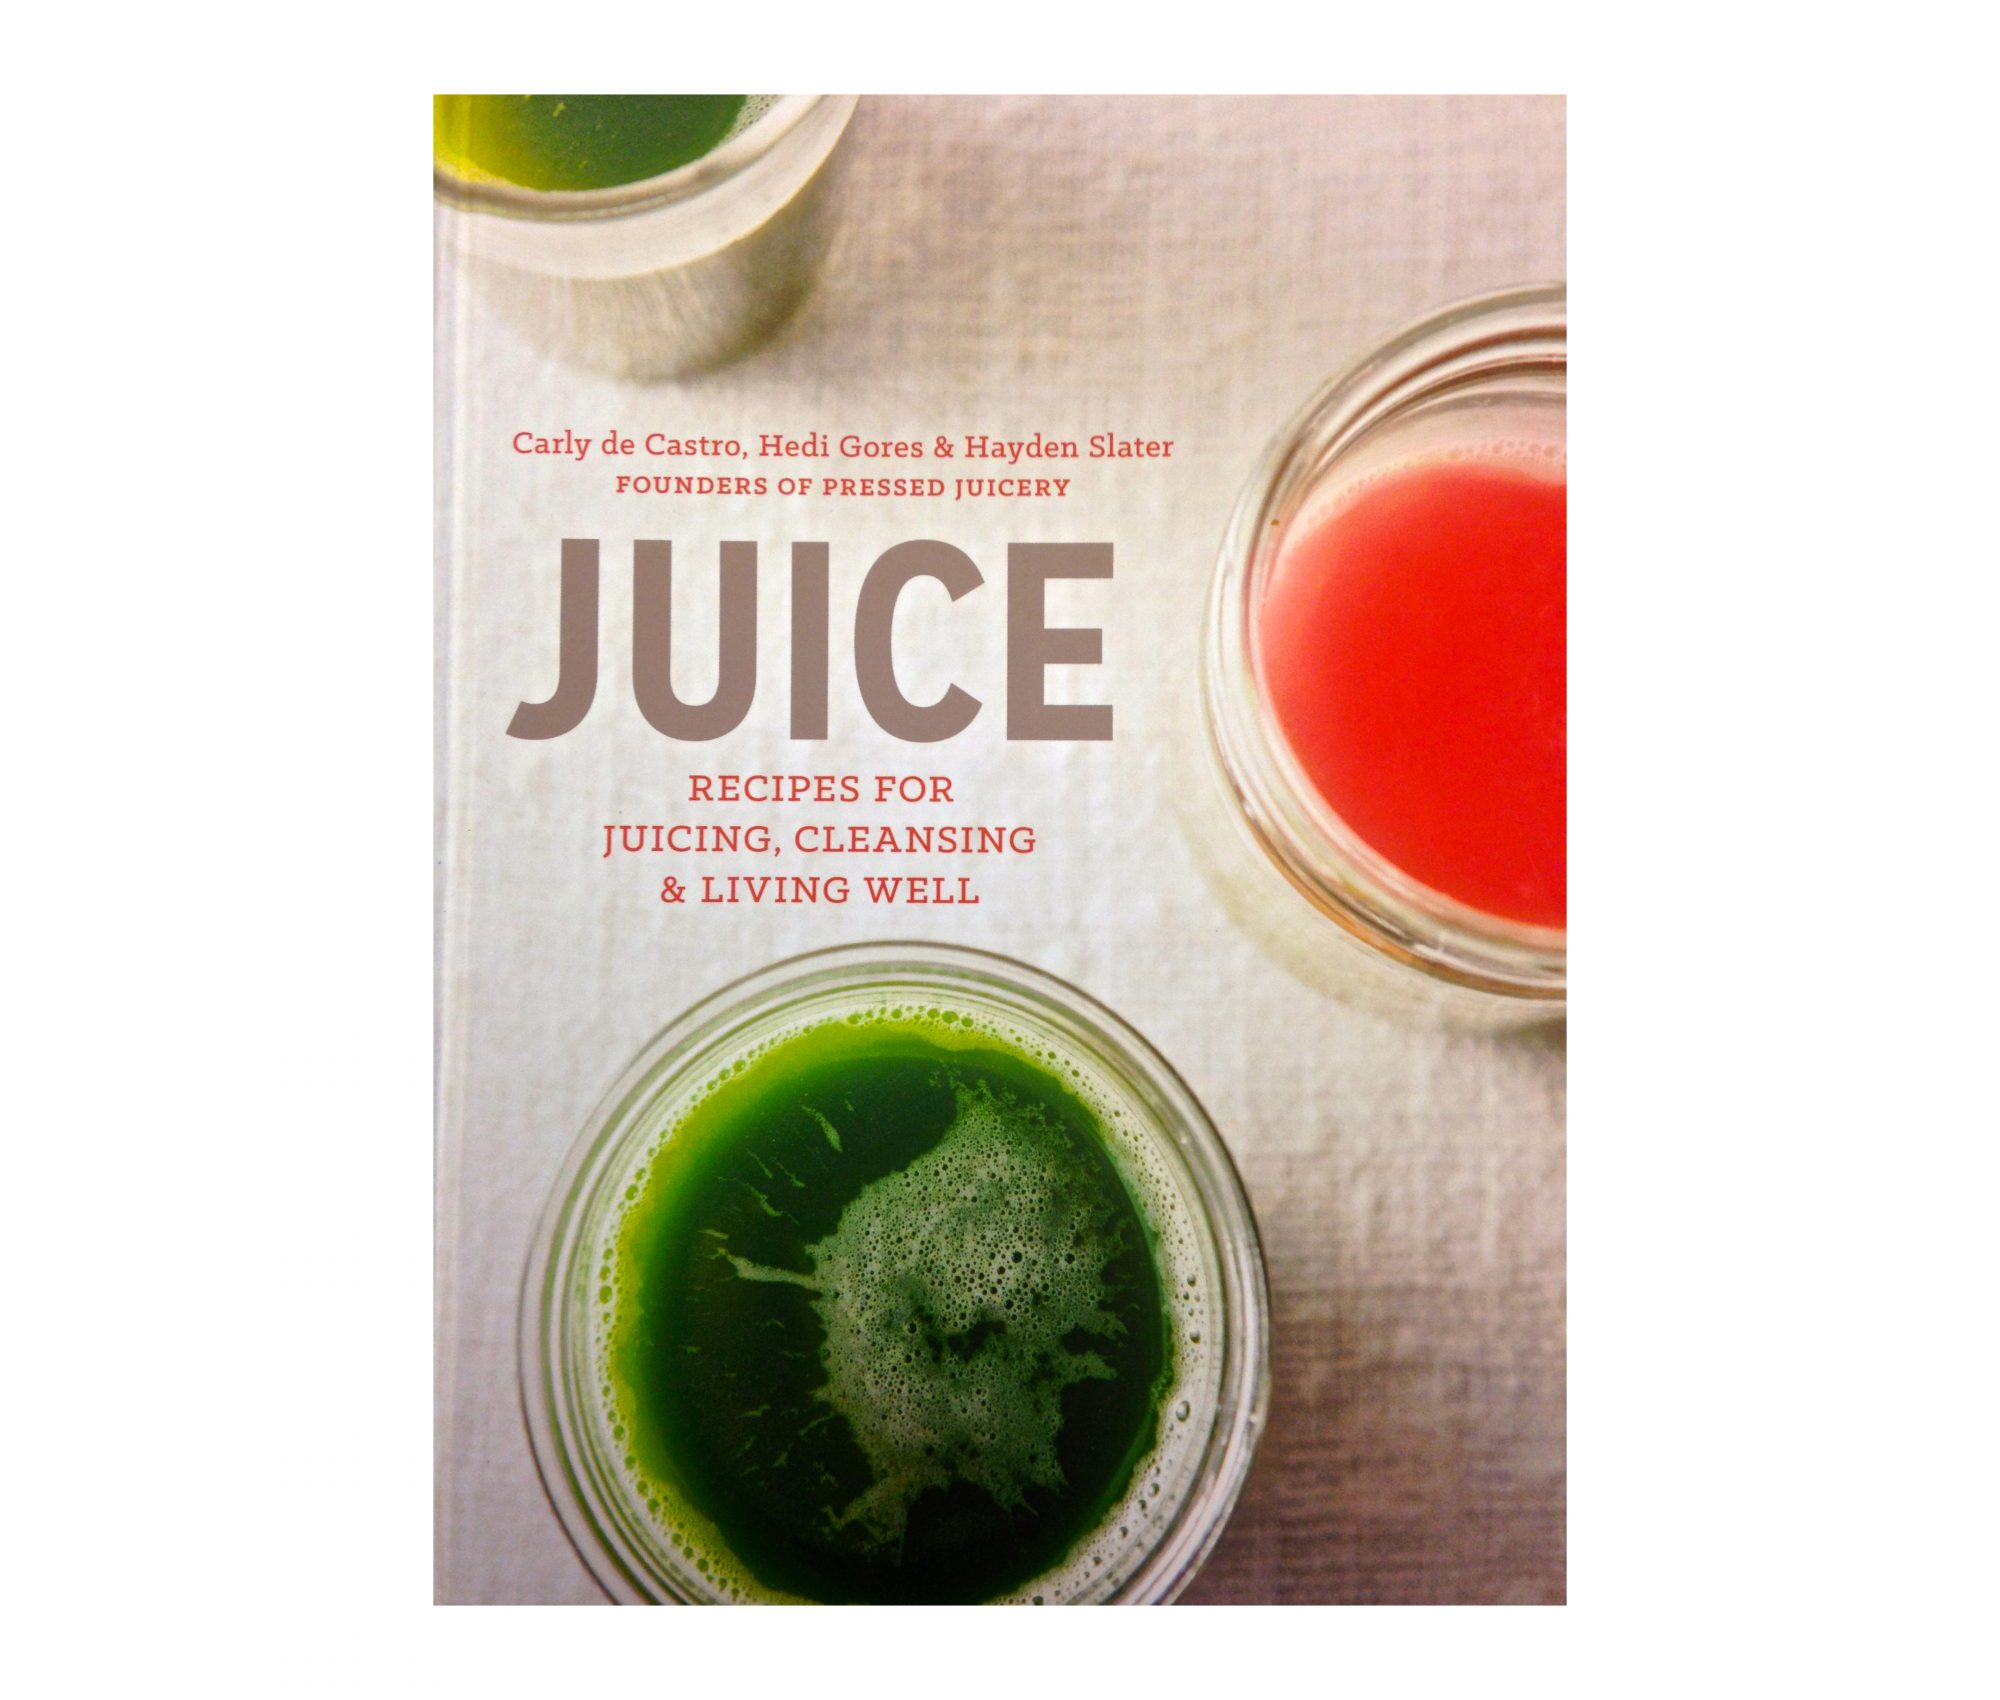 Juice: Recipes for Juicing, Cleansing & Living Well by Carly de Castro, Hedi Gores, and Hayden Slater